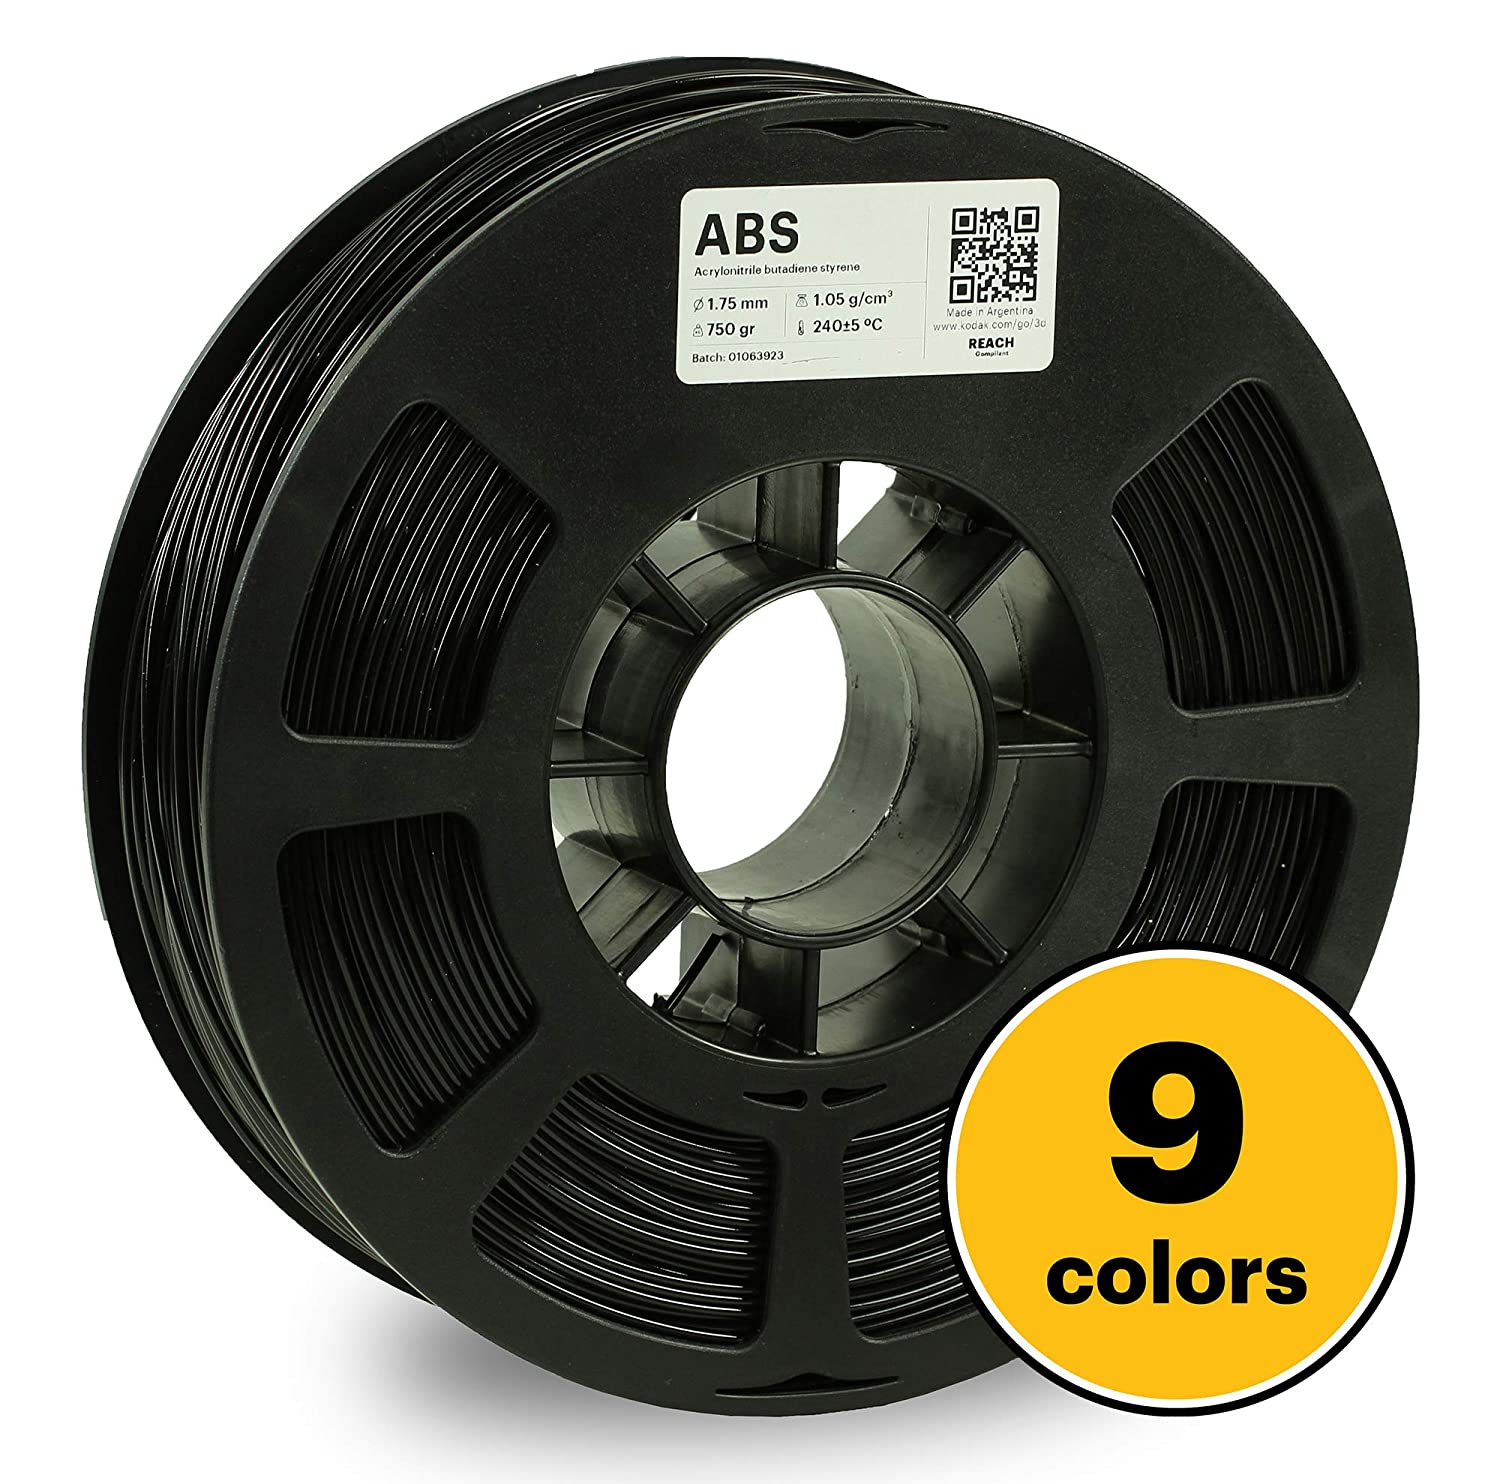 1.7lbs ABS Filament 1.75 Used as 3D Printer Filament to Refill Most FDM Printers KODAK ABS Filament 1.75mm for 3D Printer 750g Spool Green Dimensional Accuracy +//- 0.03mm